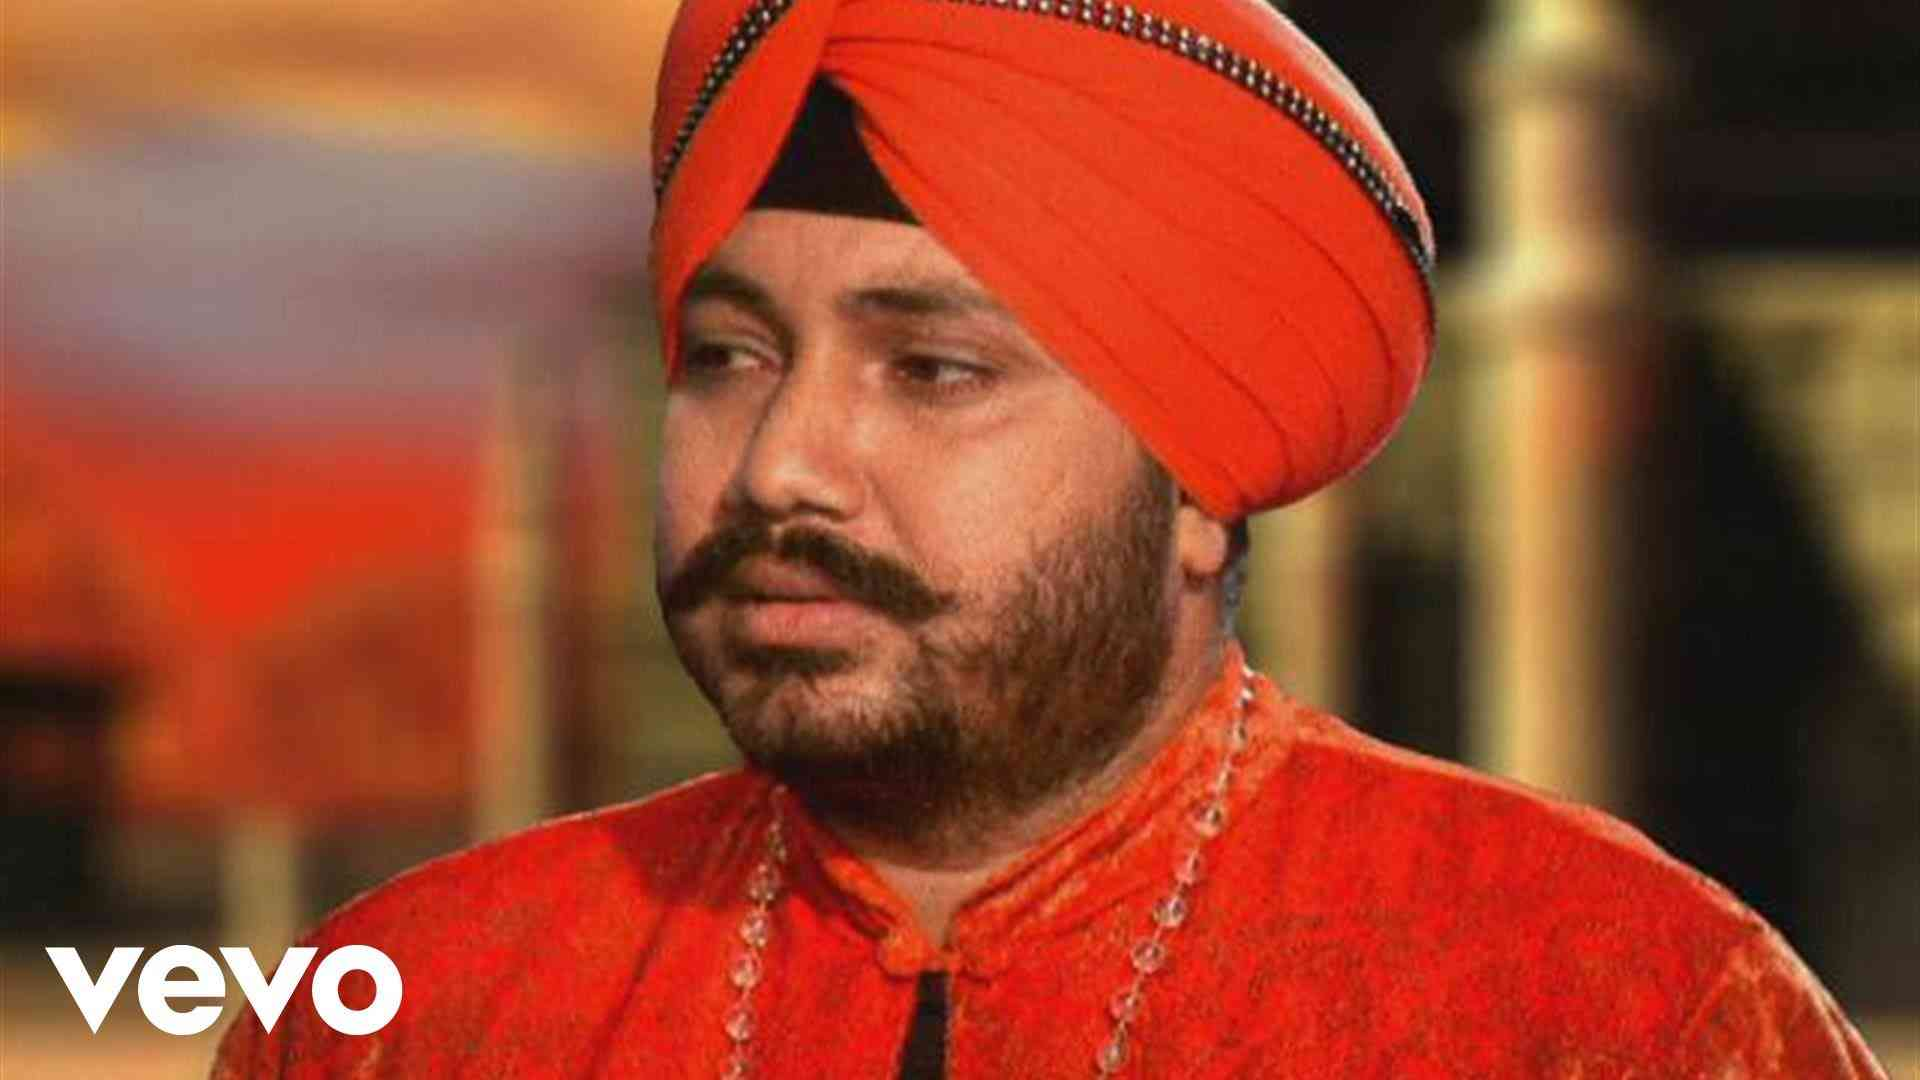 Daler Mehndi - Tunak Tunak Tun Video - YouTube